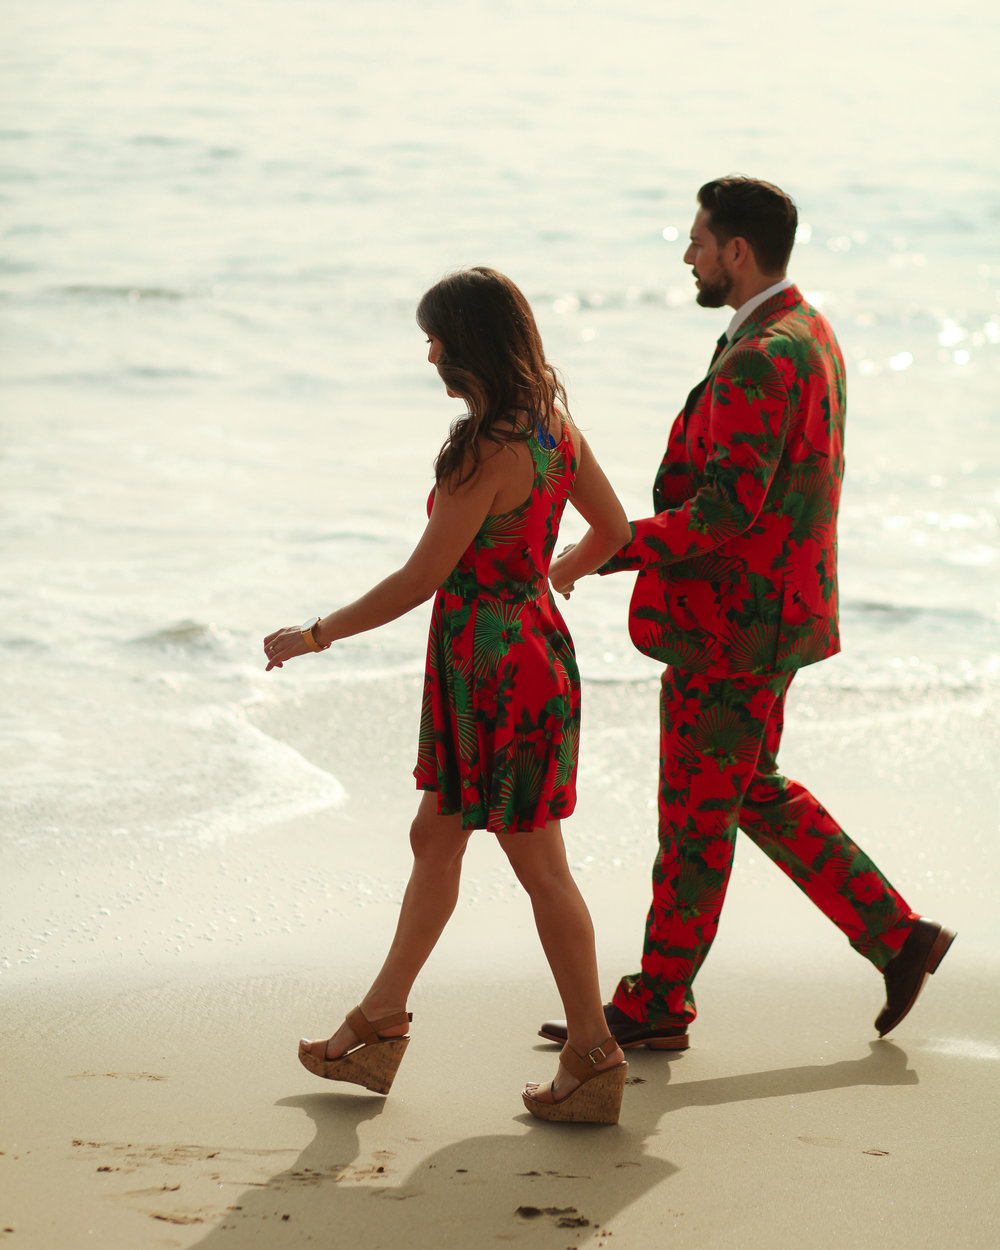 Christmas outfits, beach stroll, ugly Christmas sweater, party, ocean, couple goals